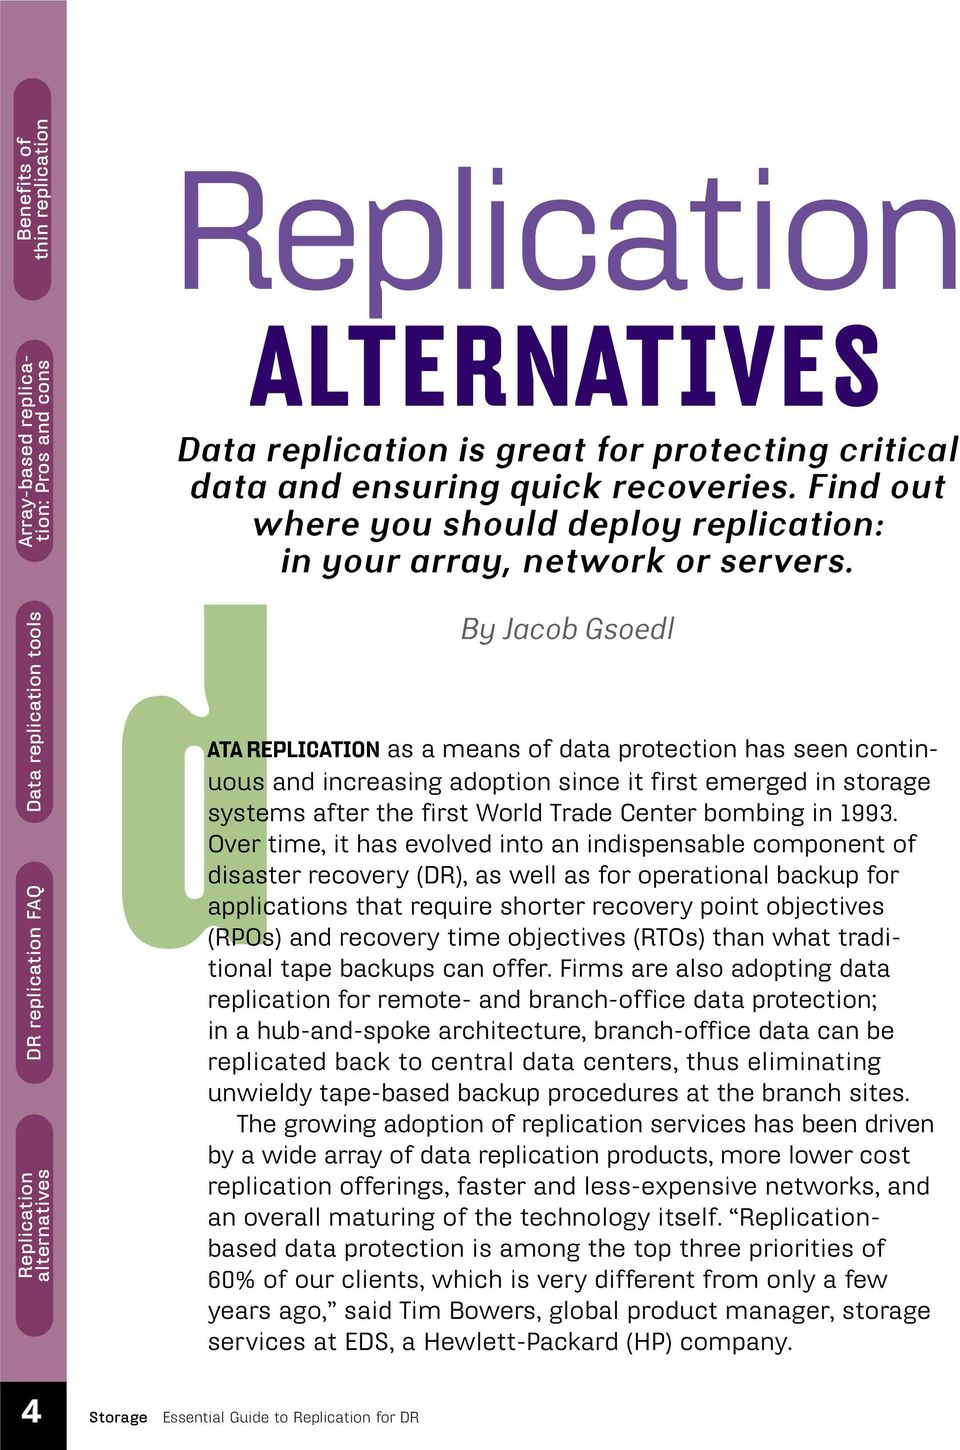 1993. Over time, it has evolved into an indispensable component of disaster recovery (DR), as well as for operational backup for applications that require shorter recovery point objectives (RPOs) and